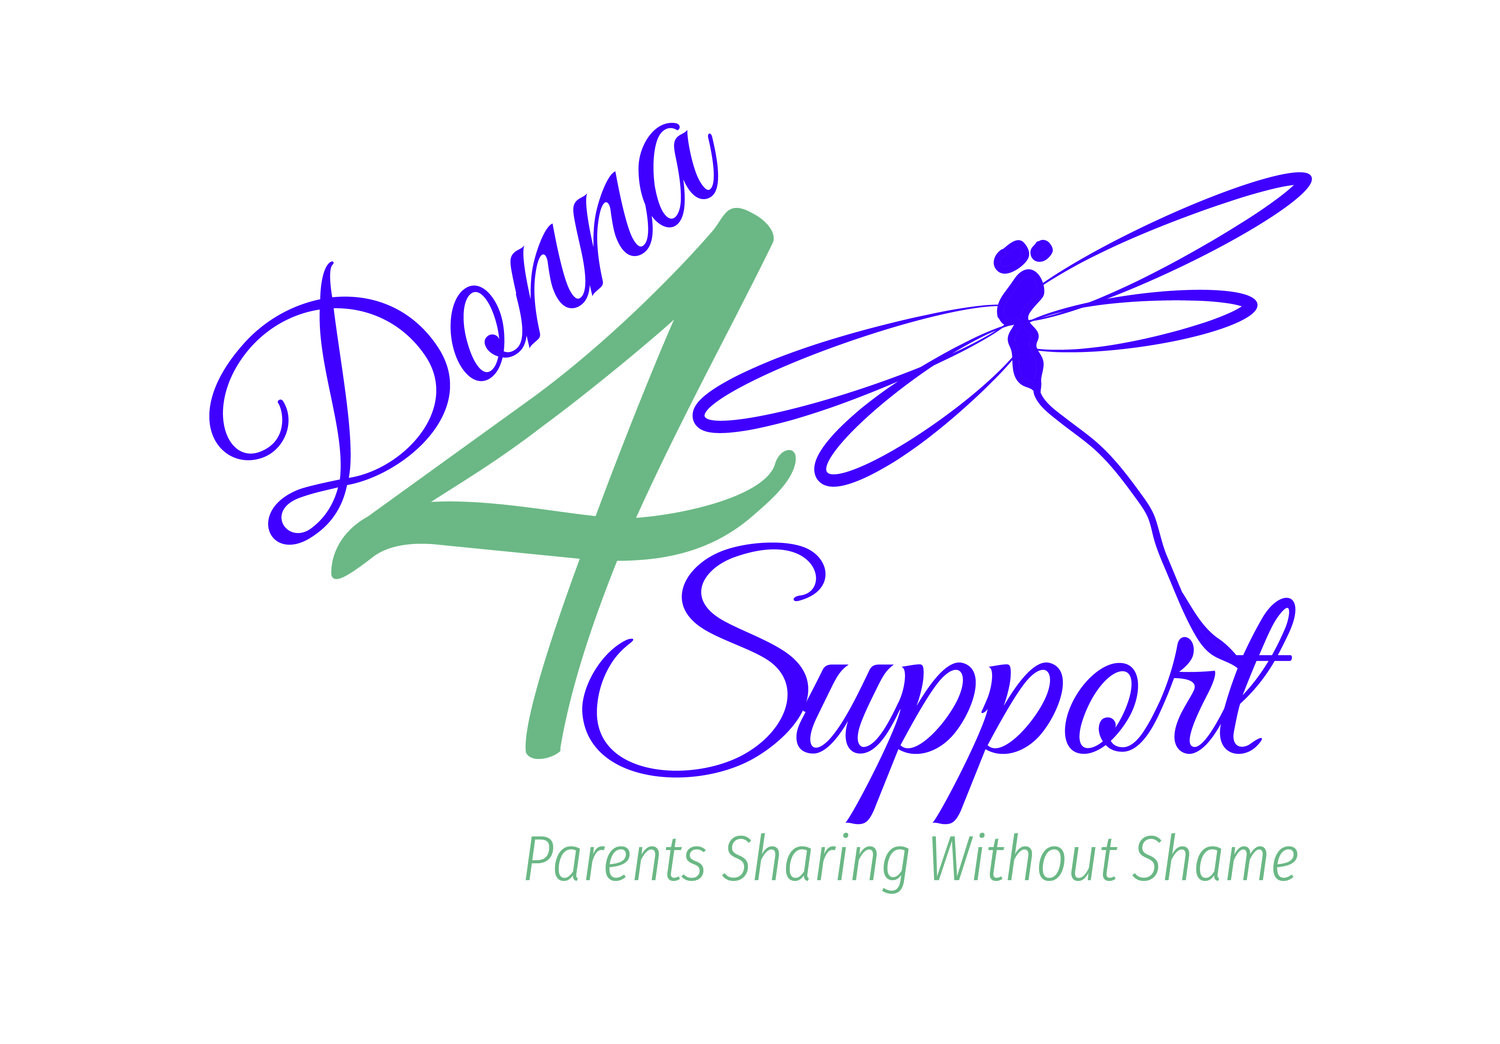 Donna 4 Support